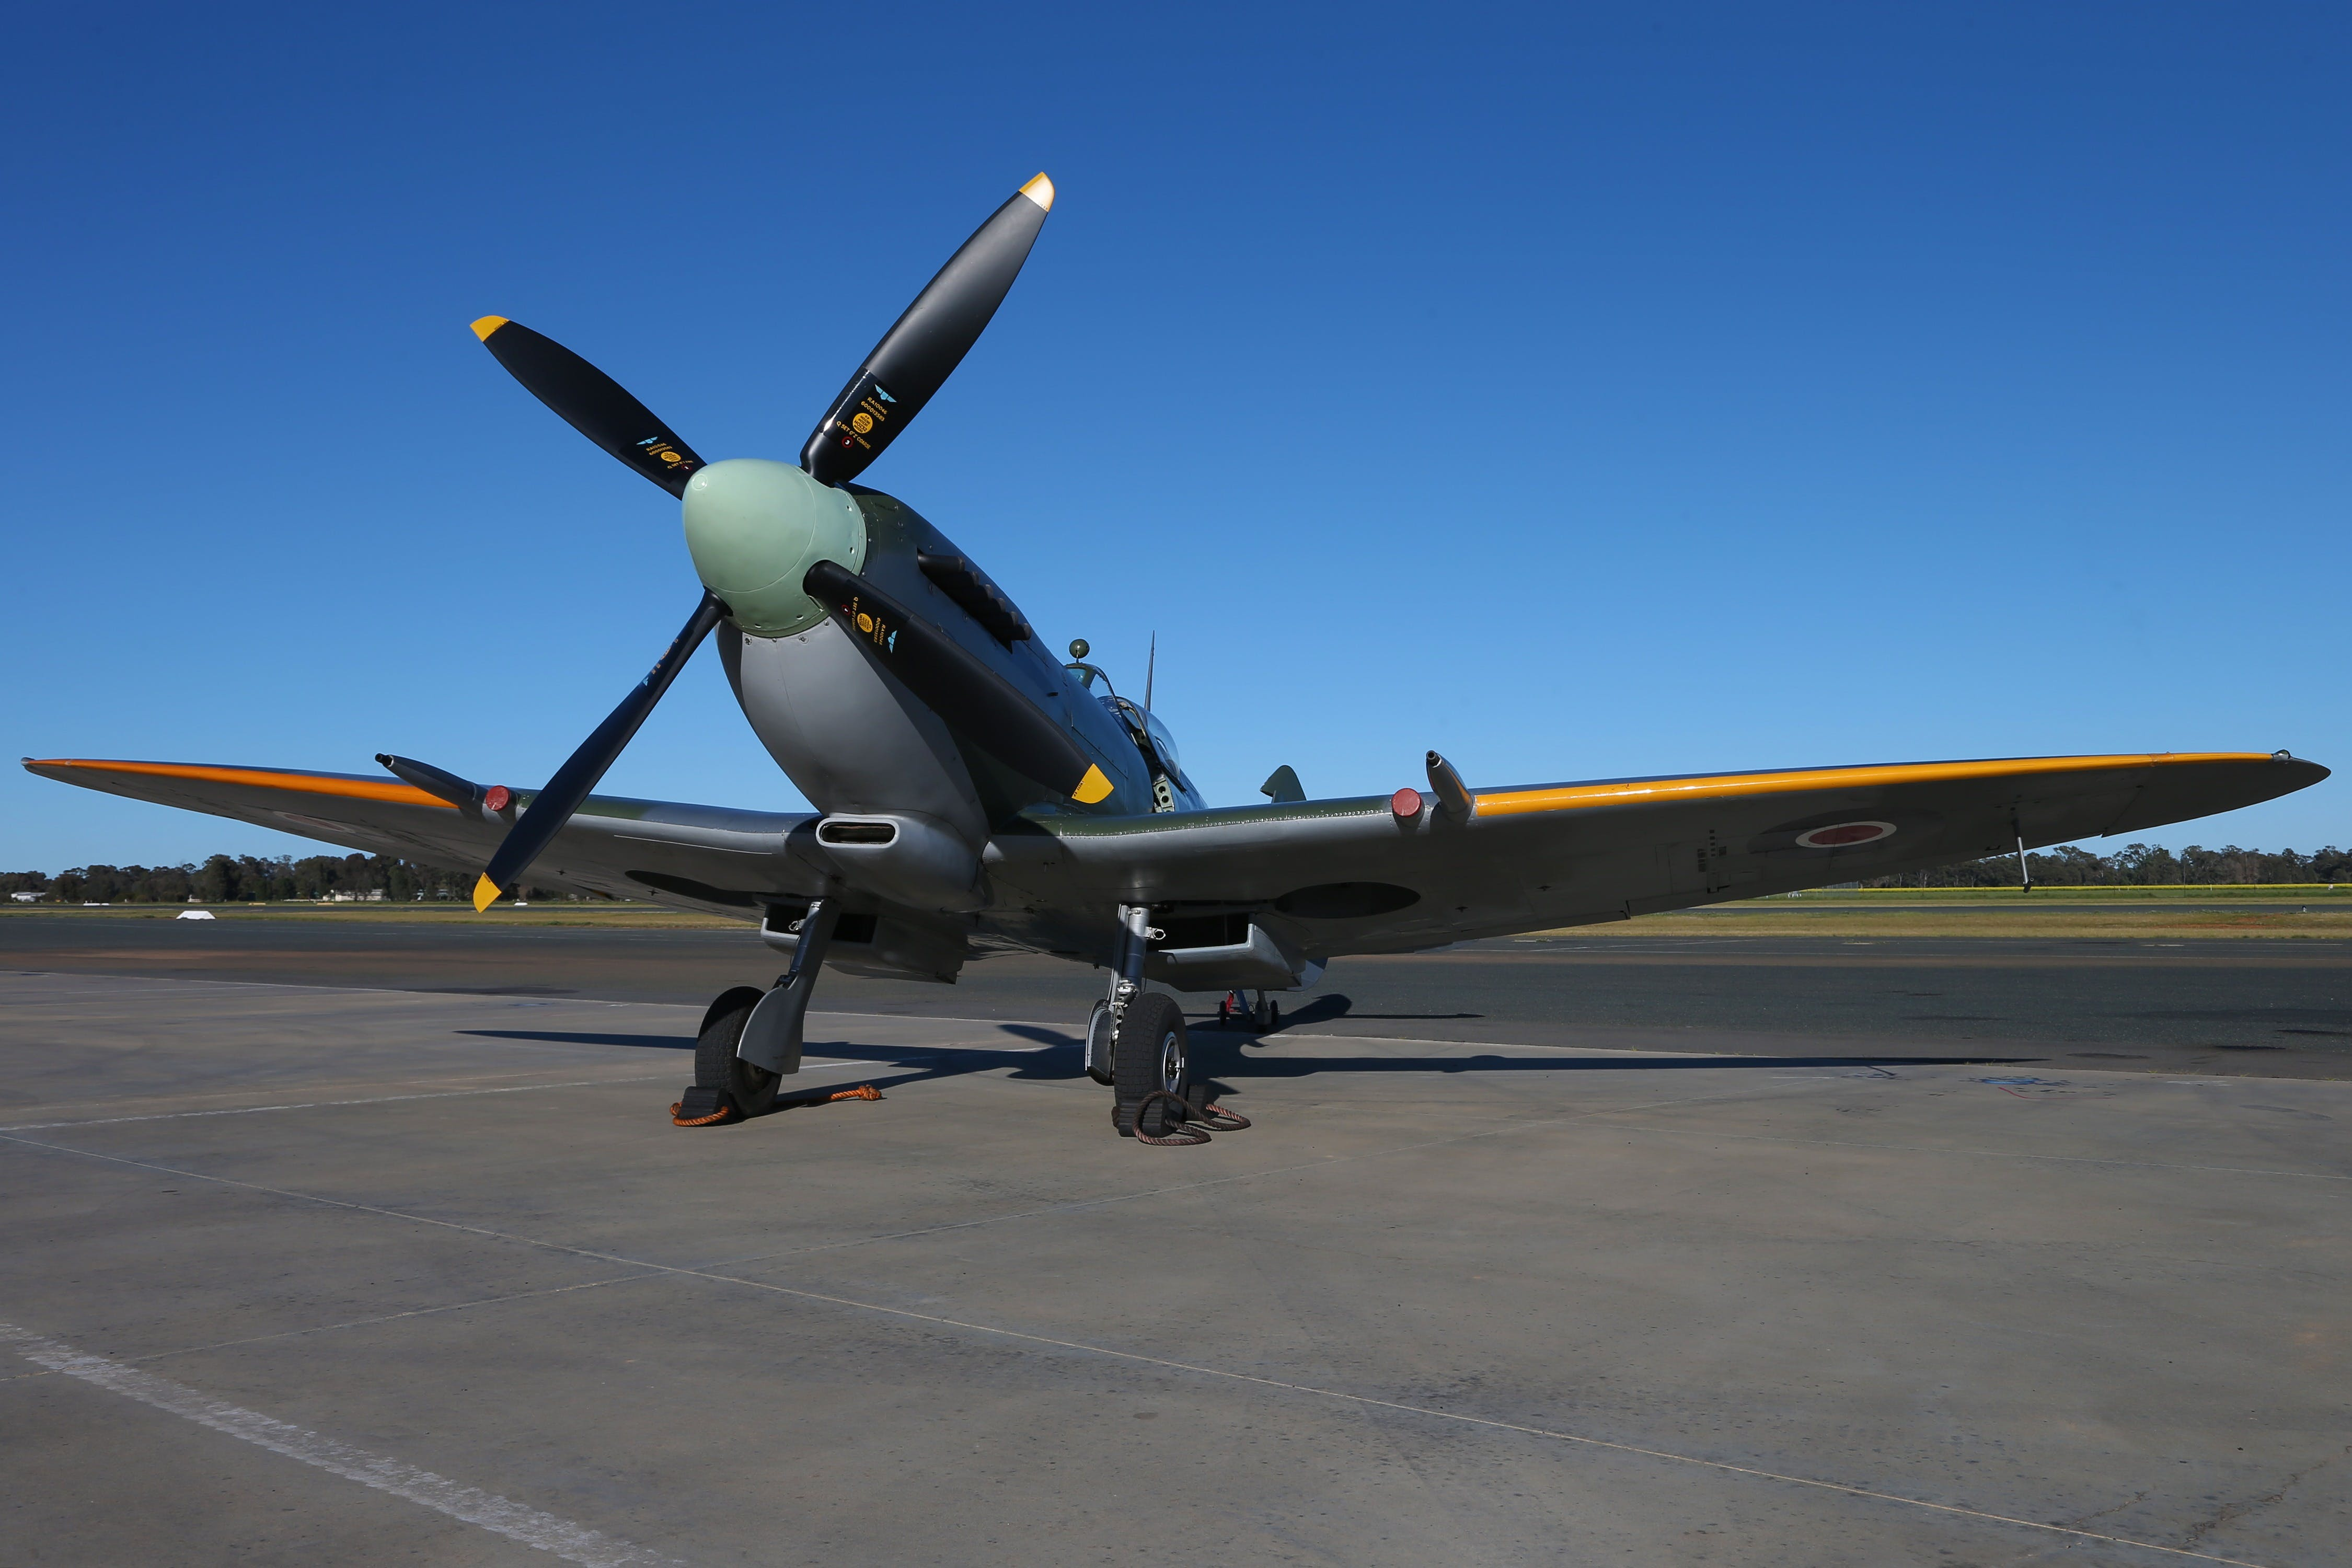 October Weekend Aircraft Showcase - Accommodation Brisbane